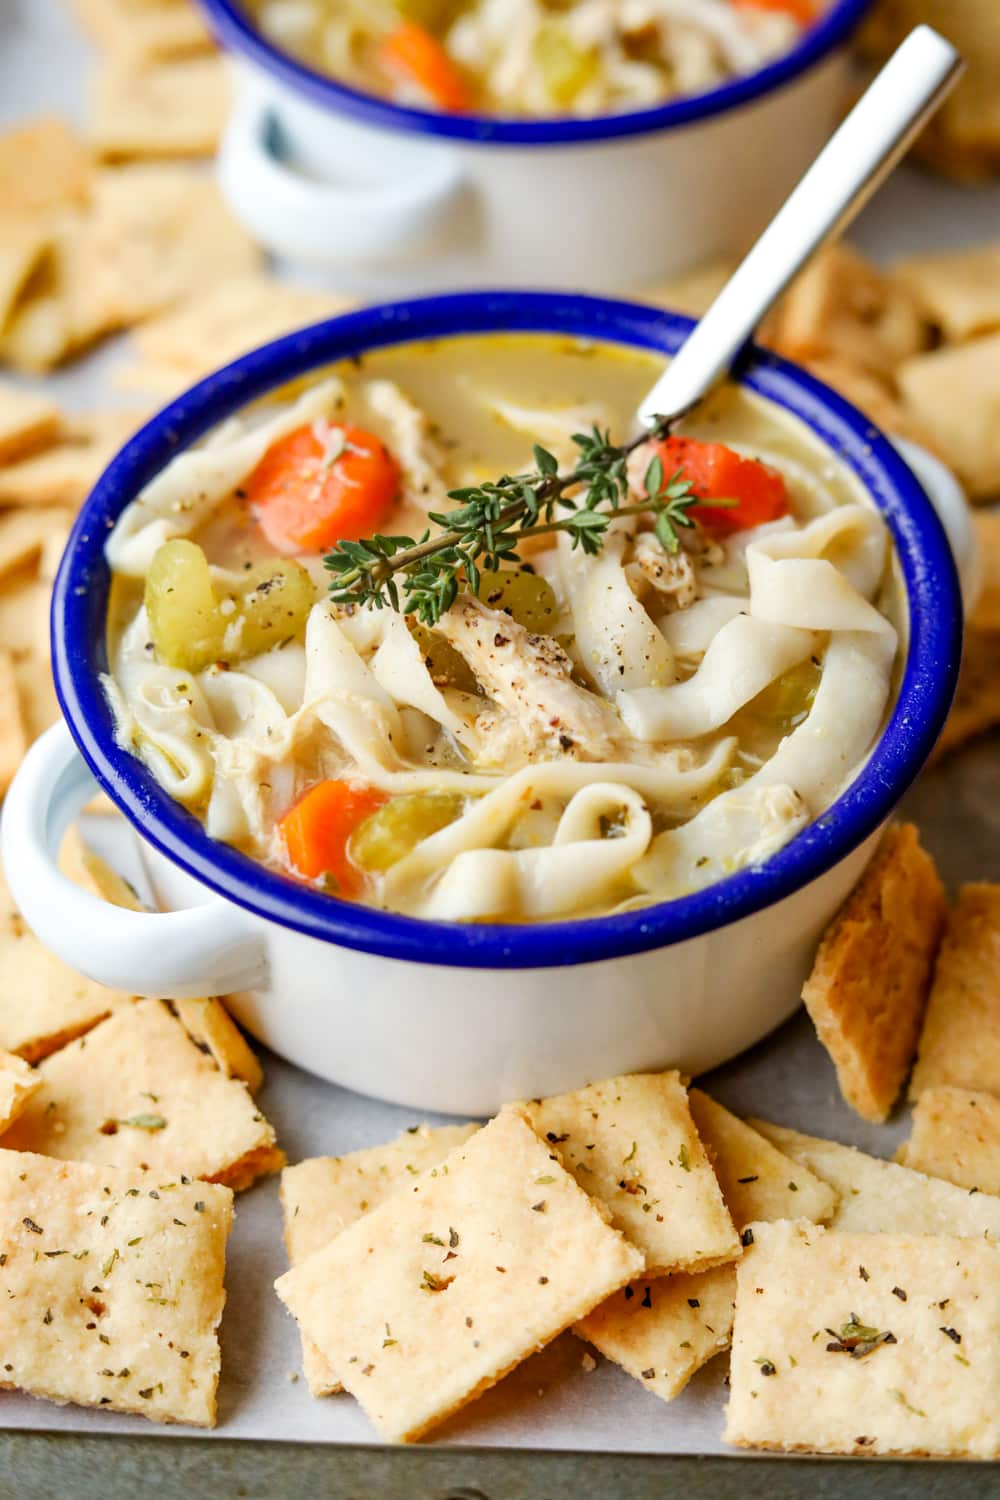 Chicken noodle soup in a white bowl with a blue rim. There are cheese crackers around the bowl, and a spoon in it.